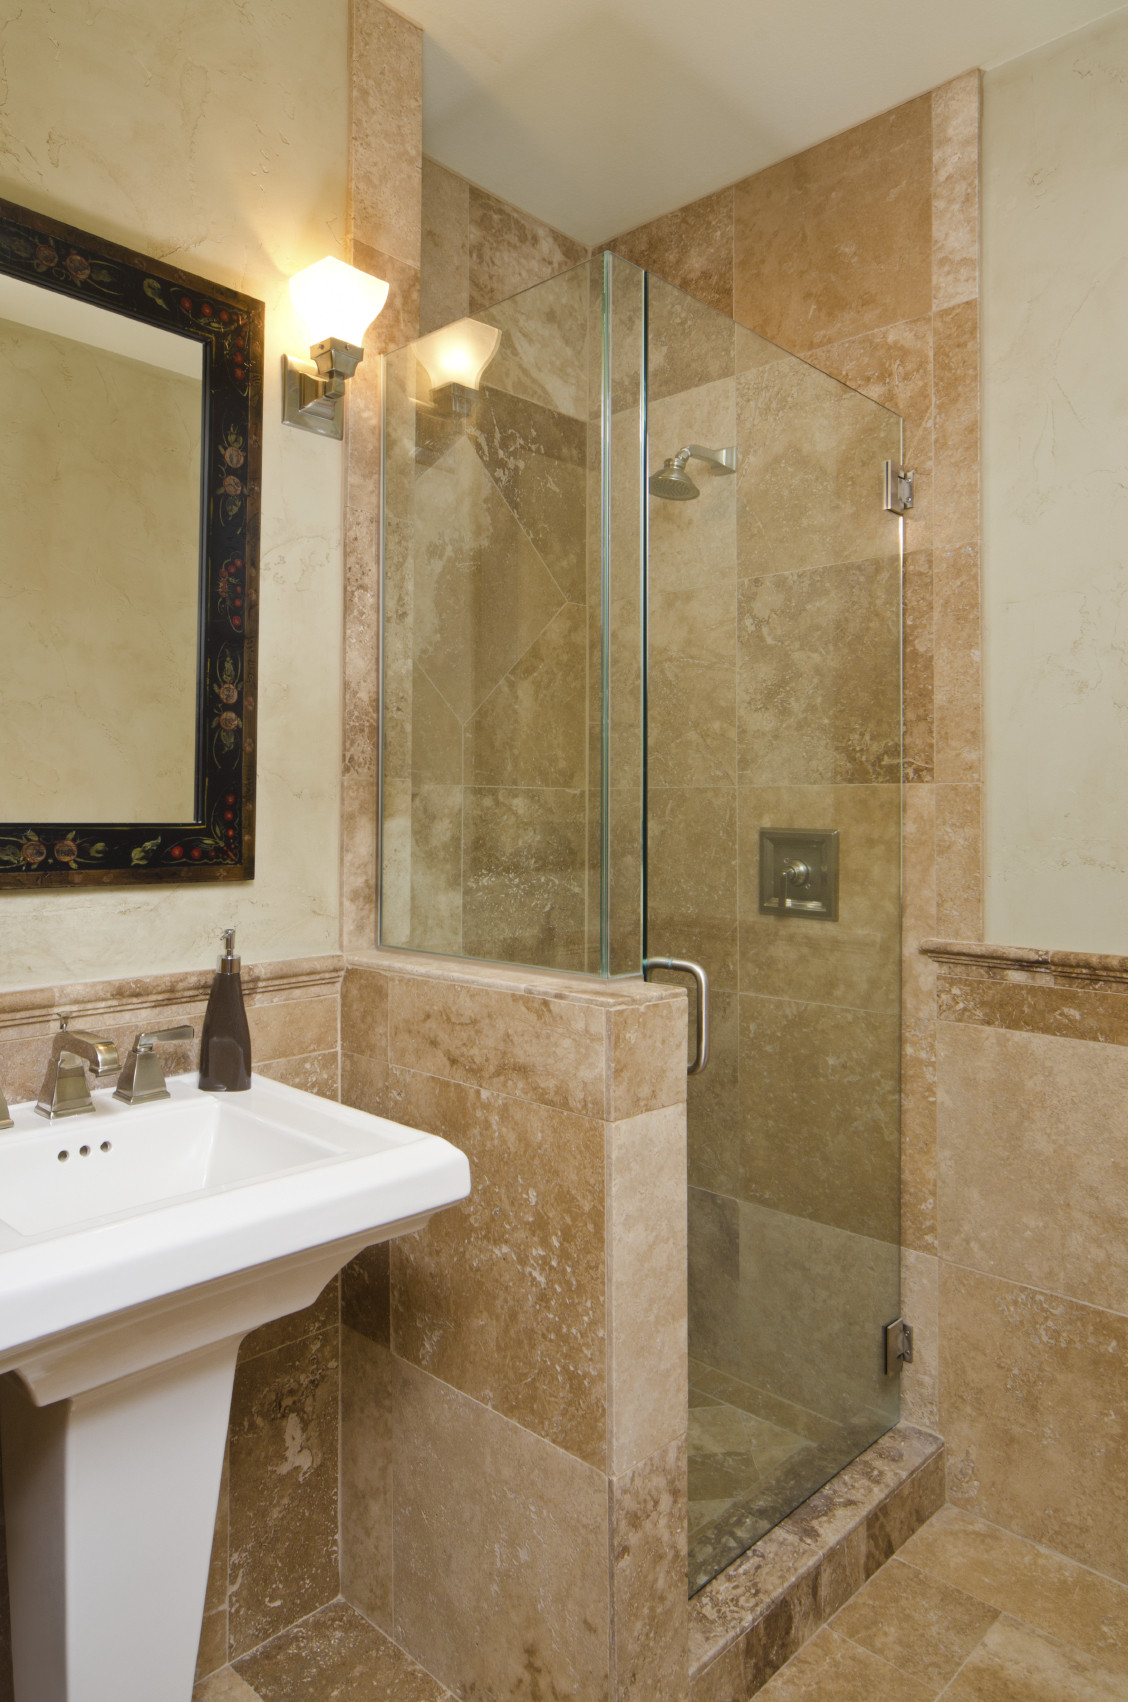 Best ideas about Small Bathroom Remodel . Save or Pin Small BAth Remodel Raleigh Now.